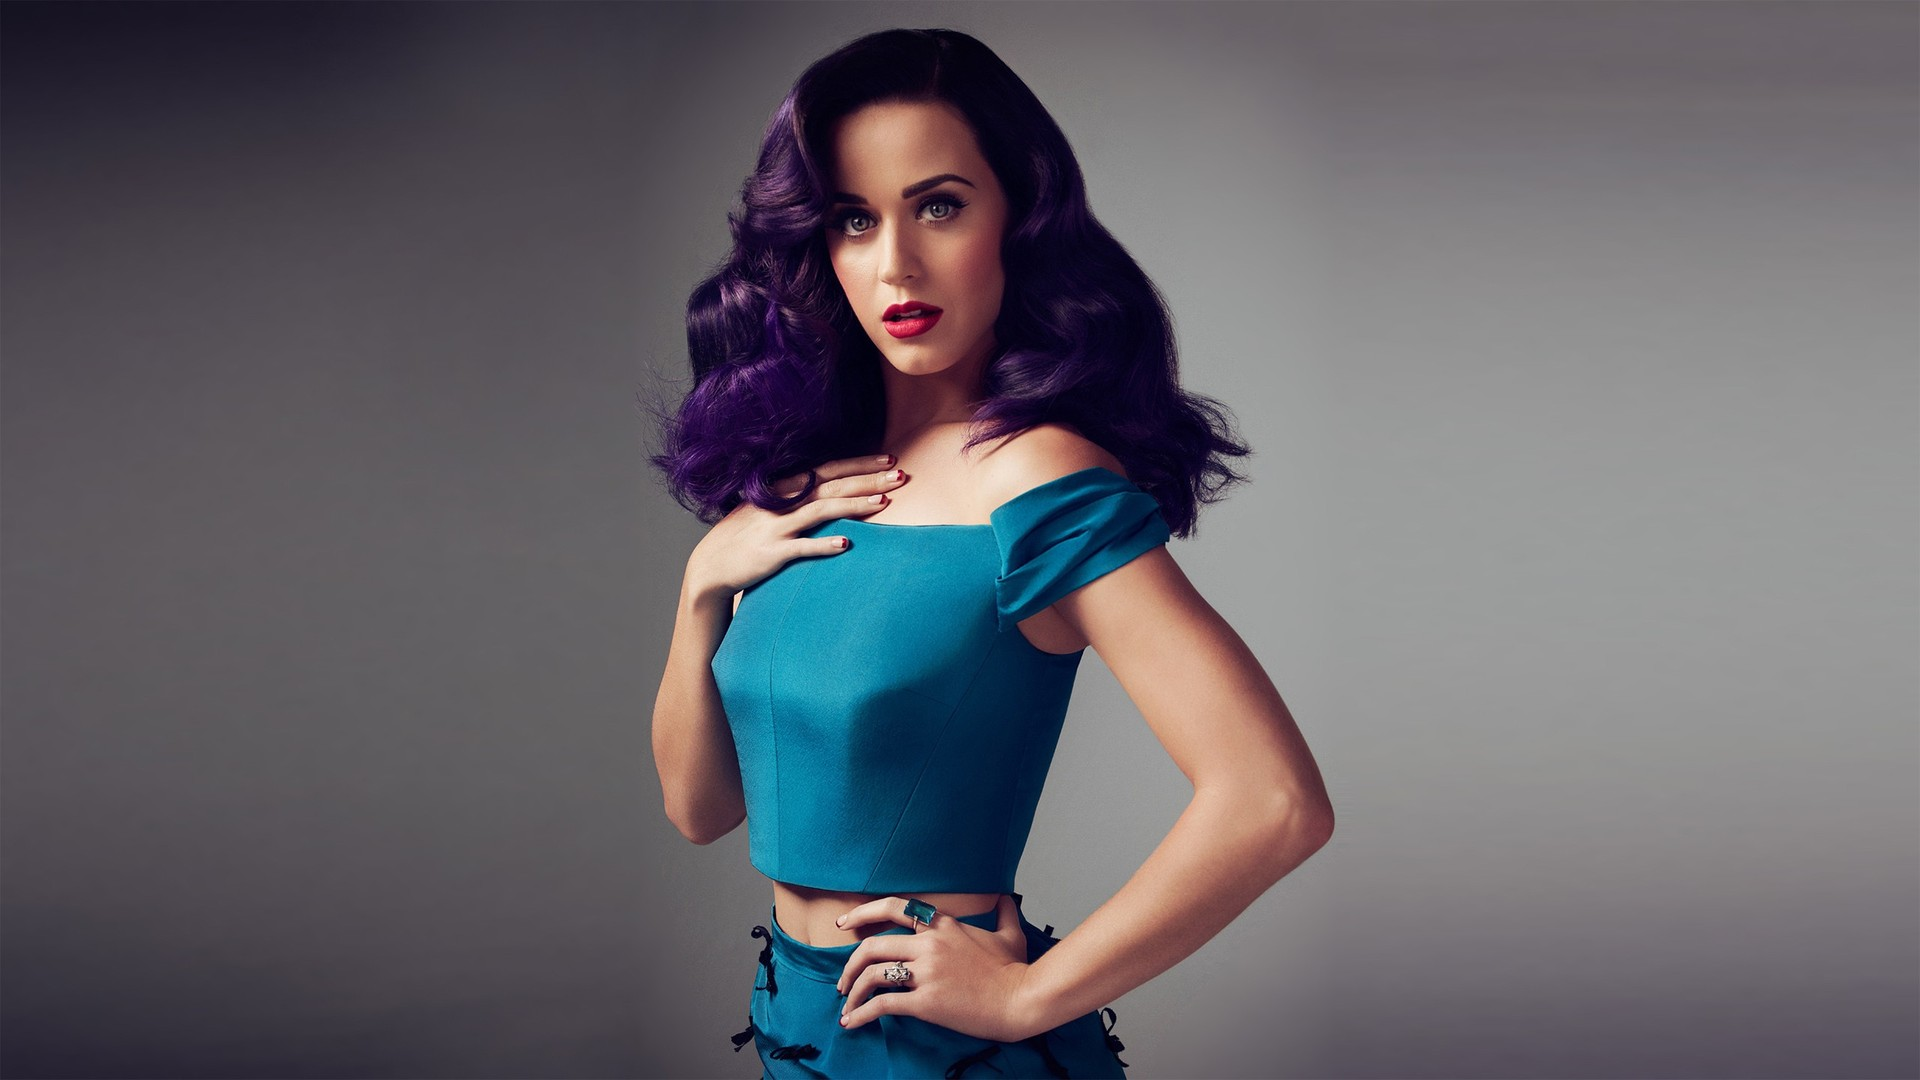 Katy Perry Wallpaper blue